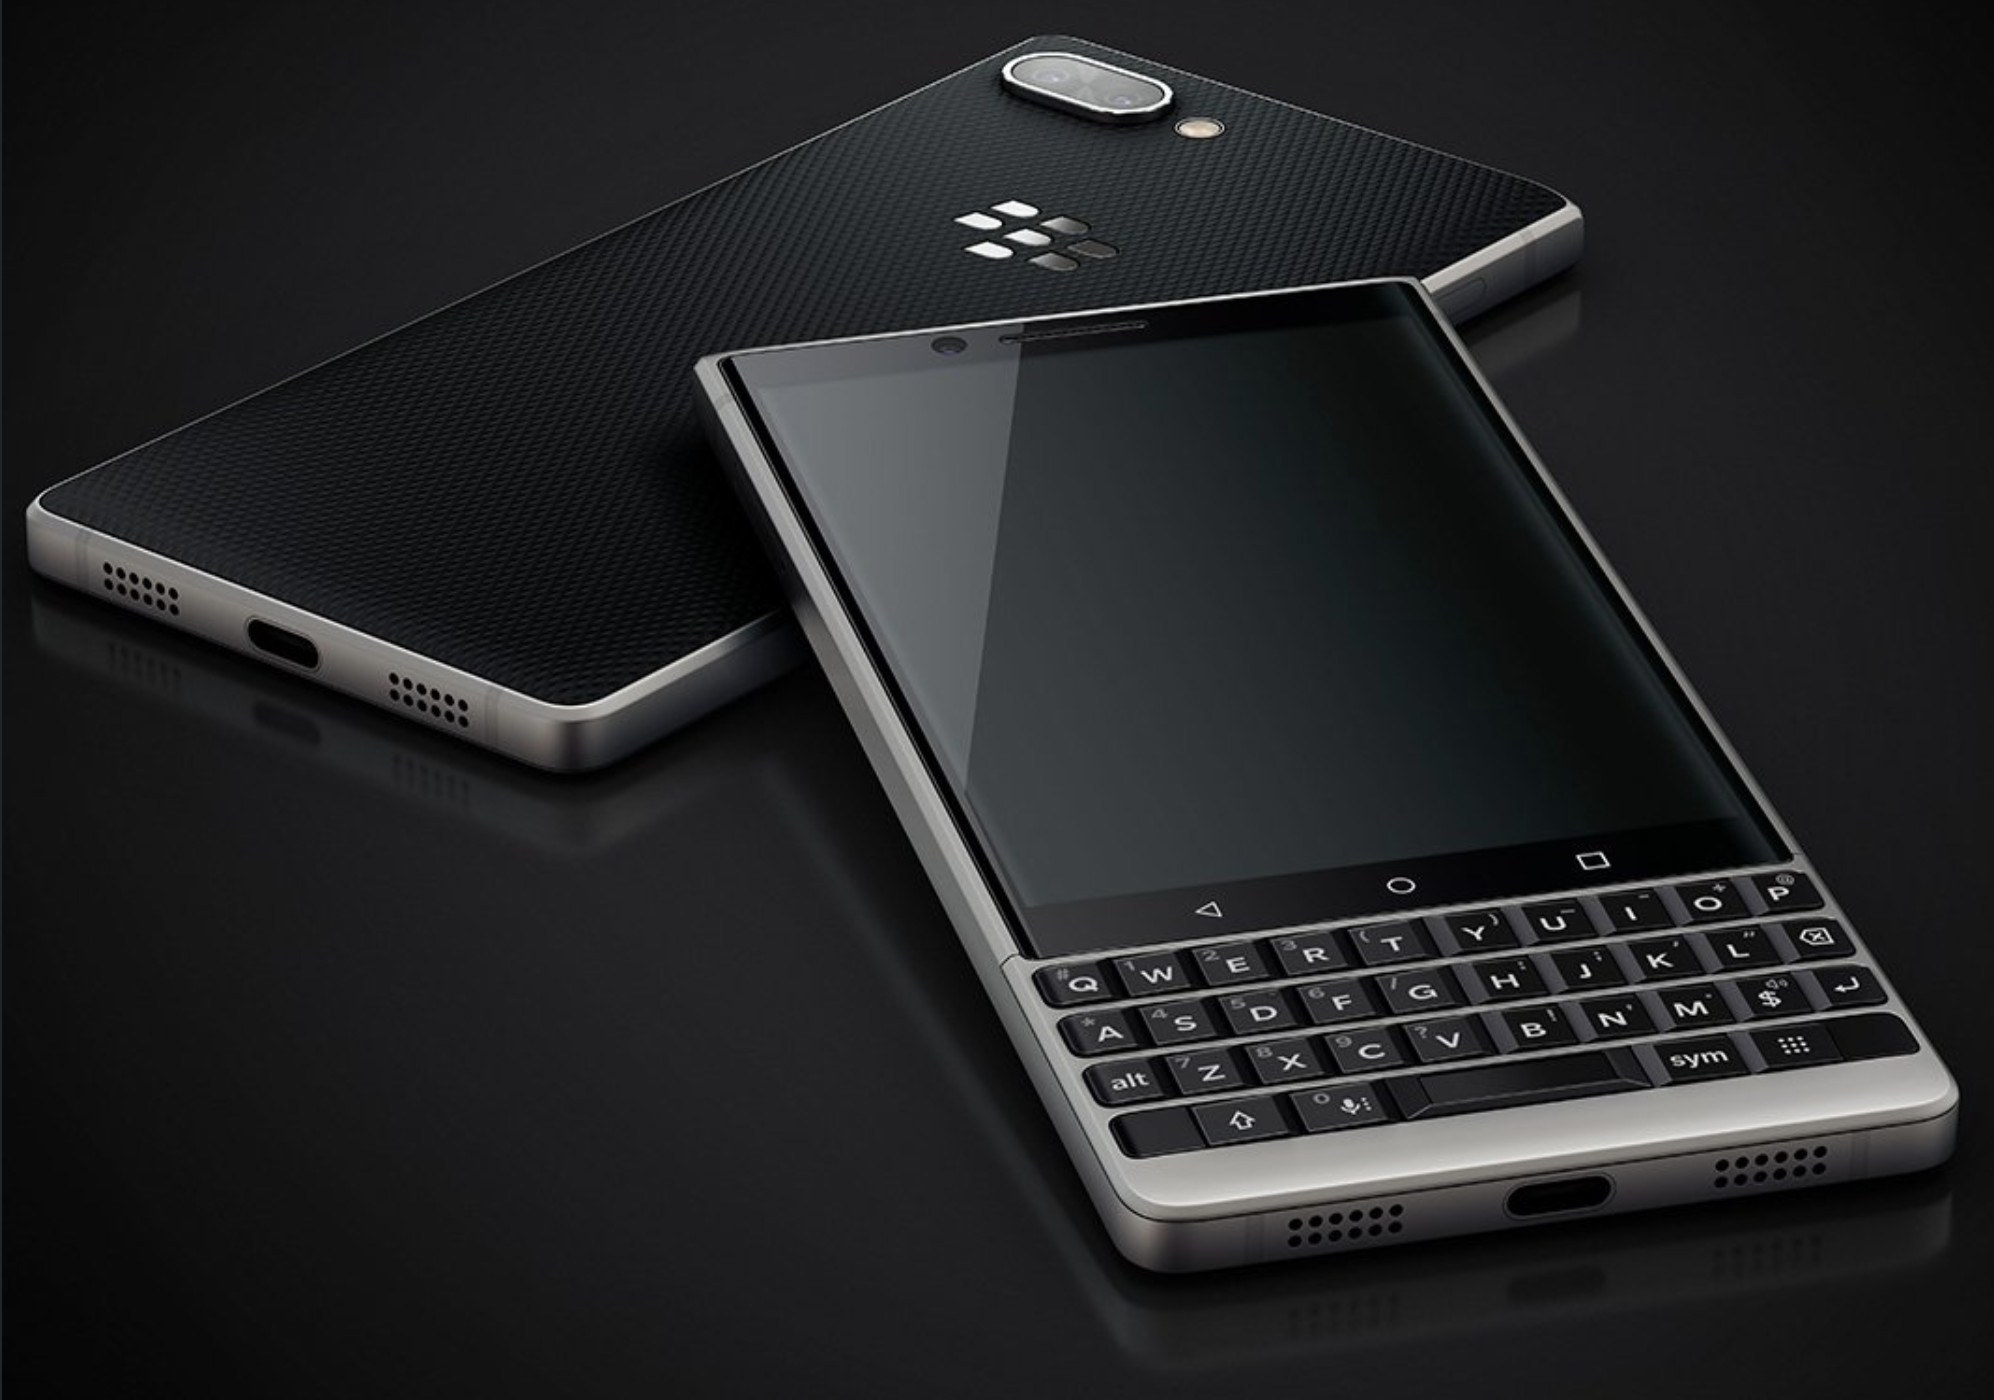 Take a look at some leaked photos of the BlackBerry KEY2